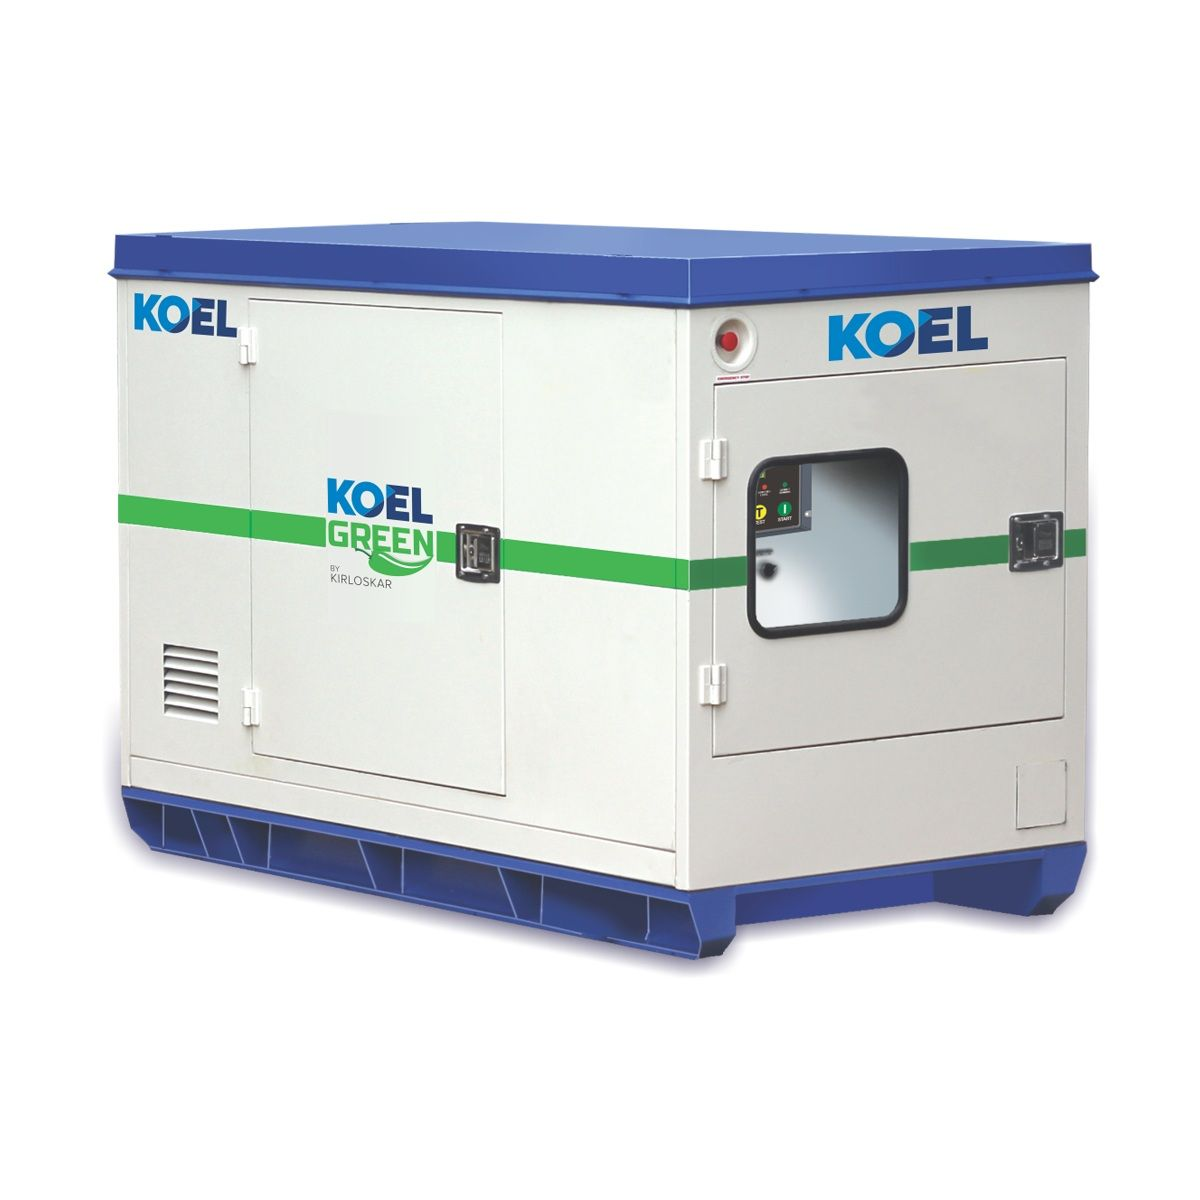 Koel Green Diesel Generator Sets In The Range Of 15 Kva 30 Kva By Kirloskar Comply With The Cpcb Norm Enhanced Diesel Generators Generation Fuel Efficient